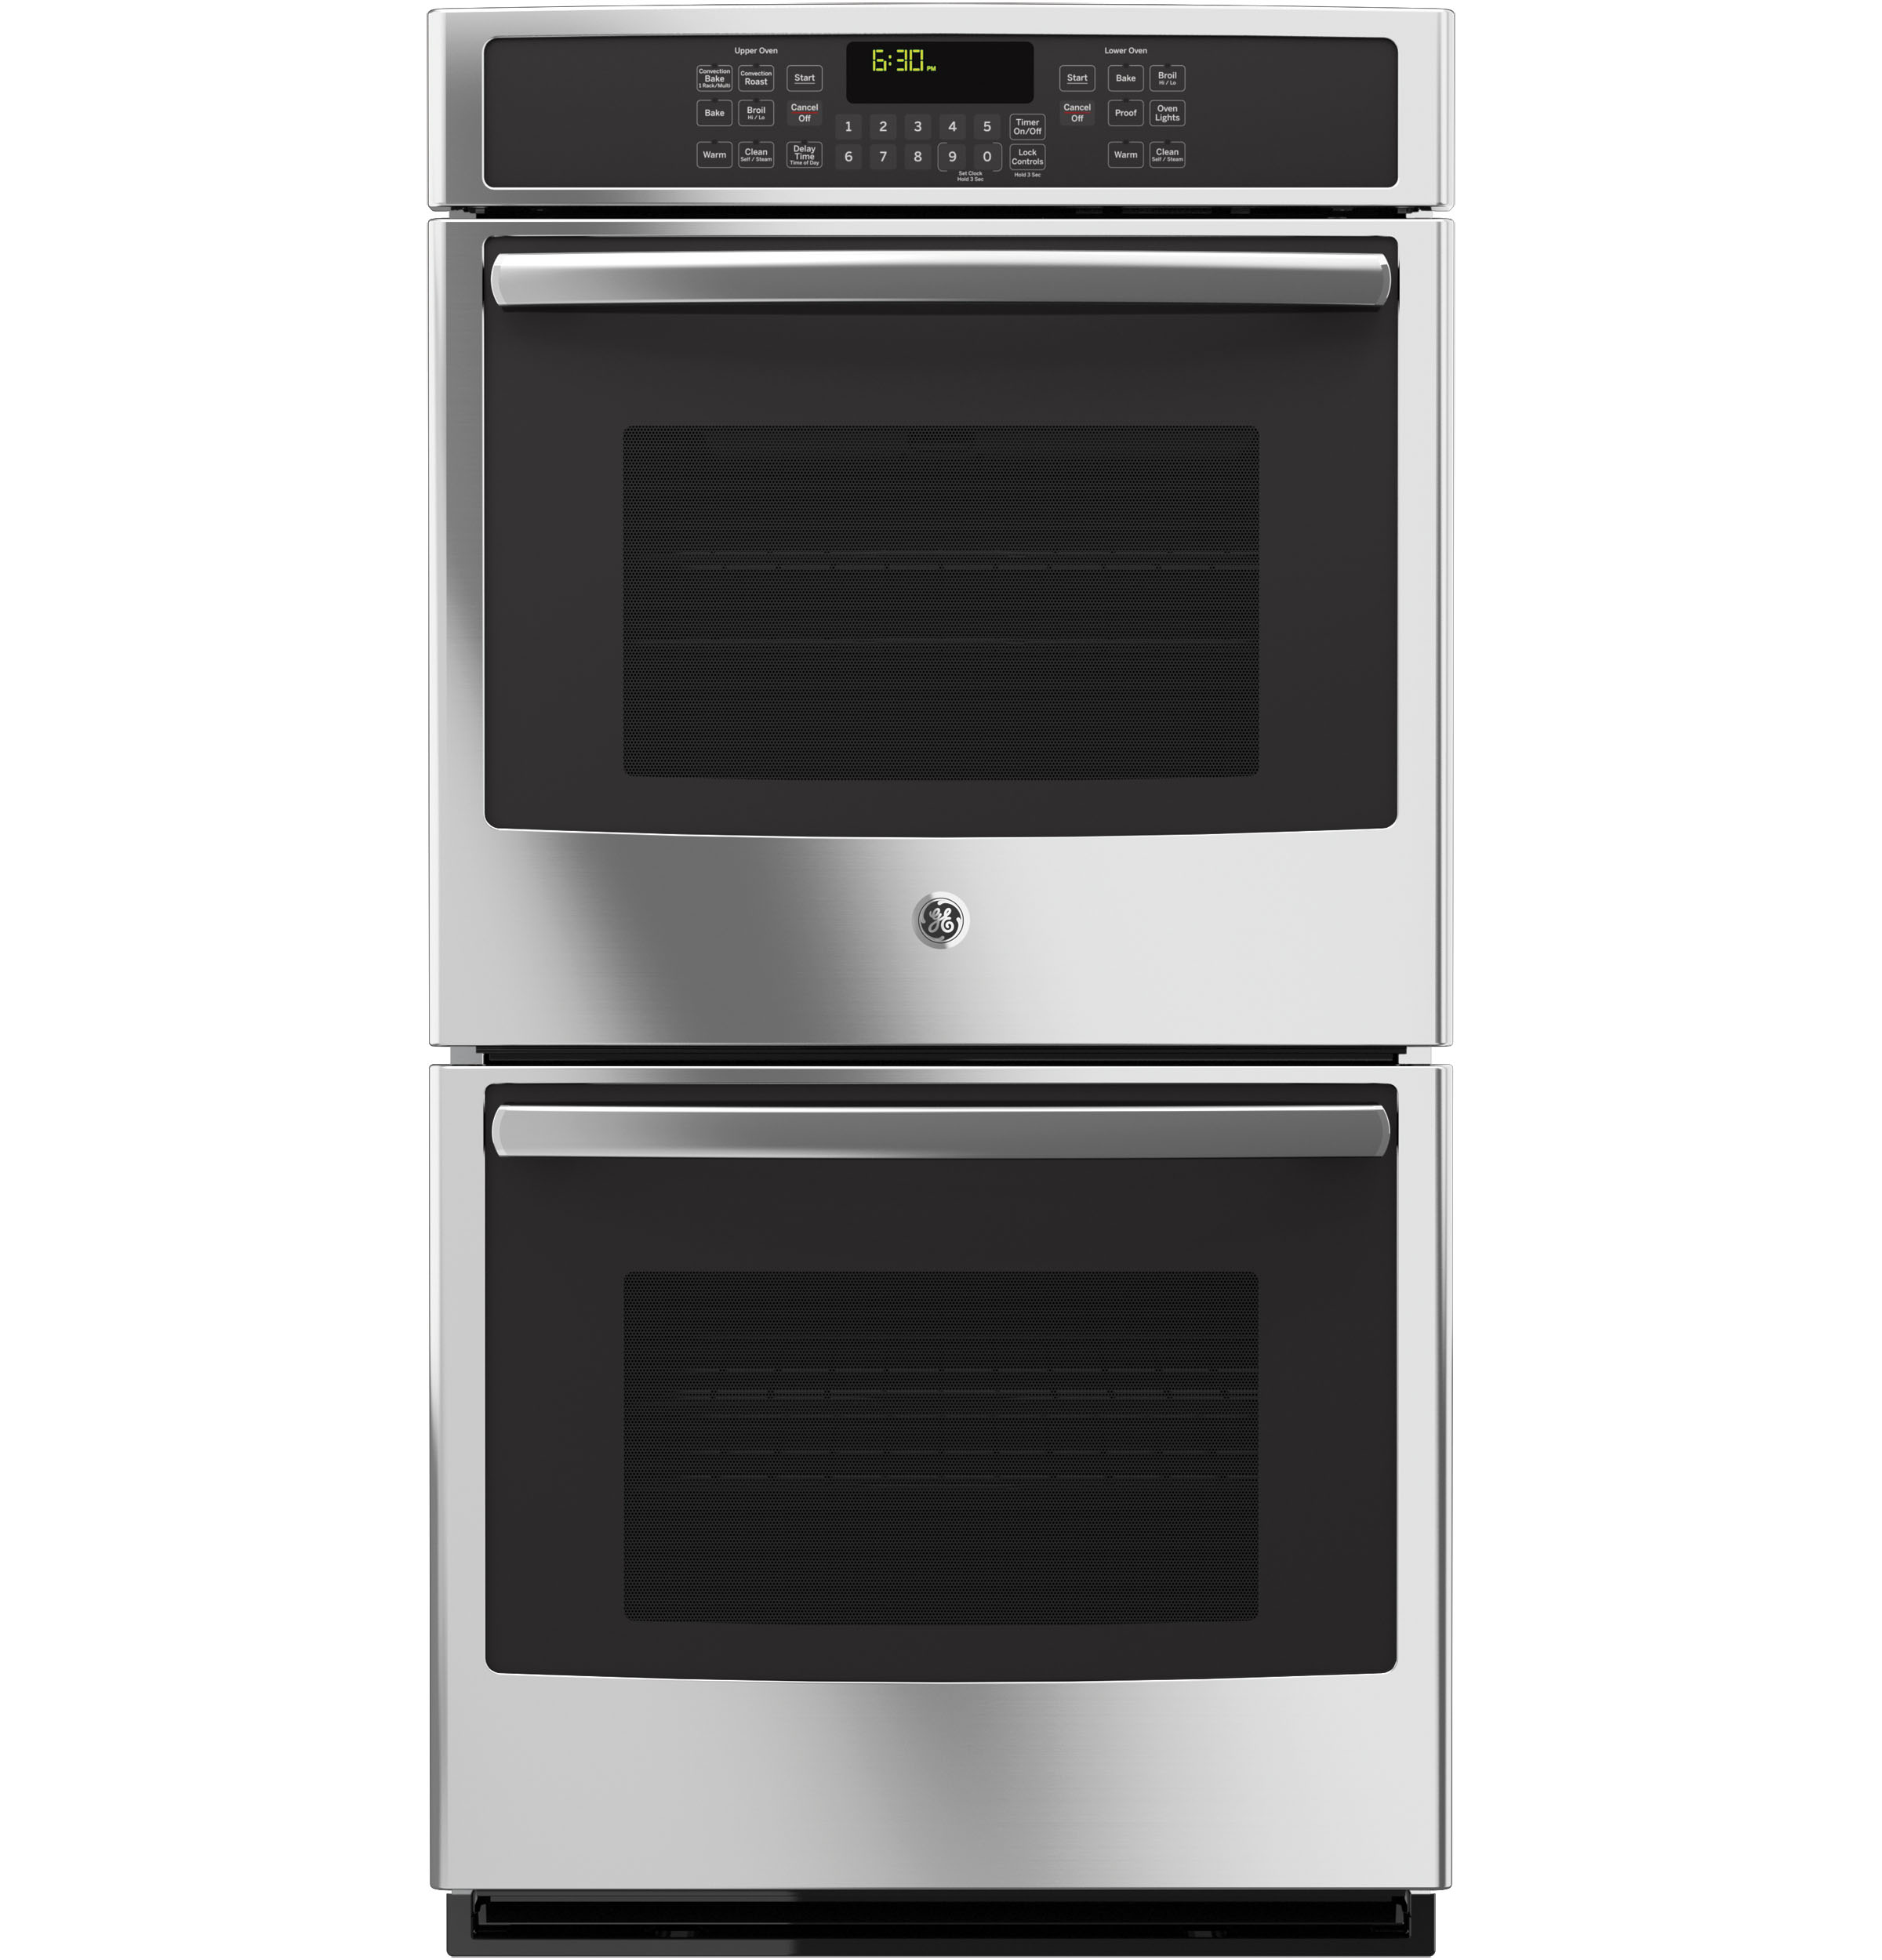 Ge 27 Built In Double Convection Wall Oven Jk5500sfss Want To Install A New 40 Amp Have 50 Circuit Product Image